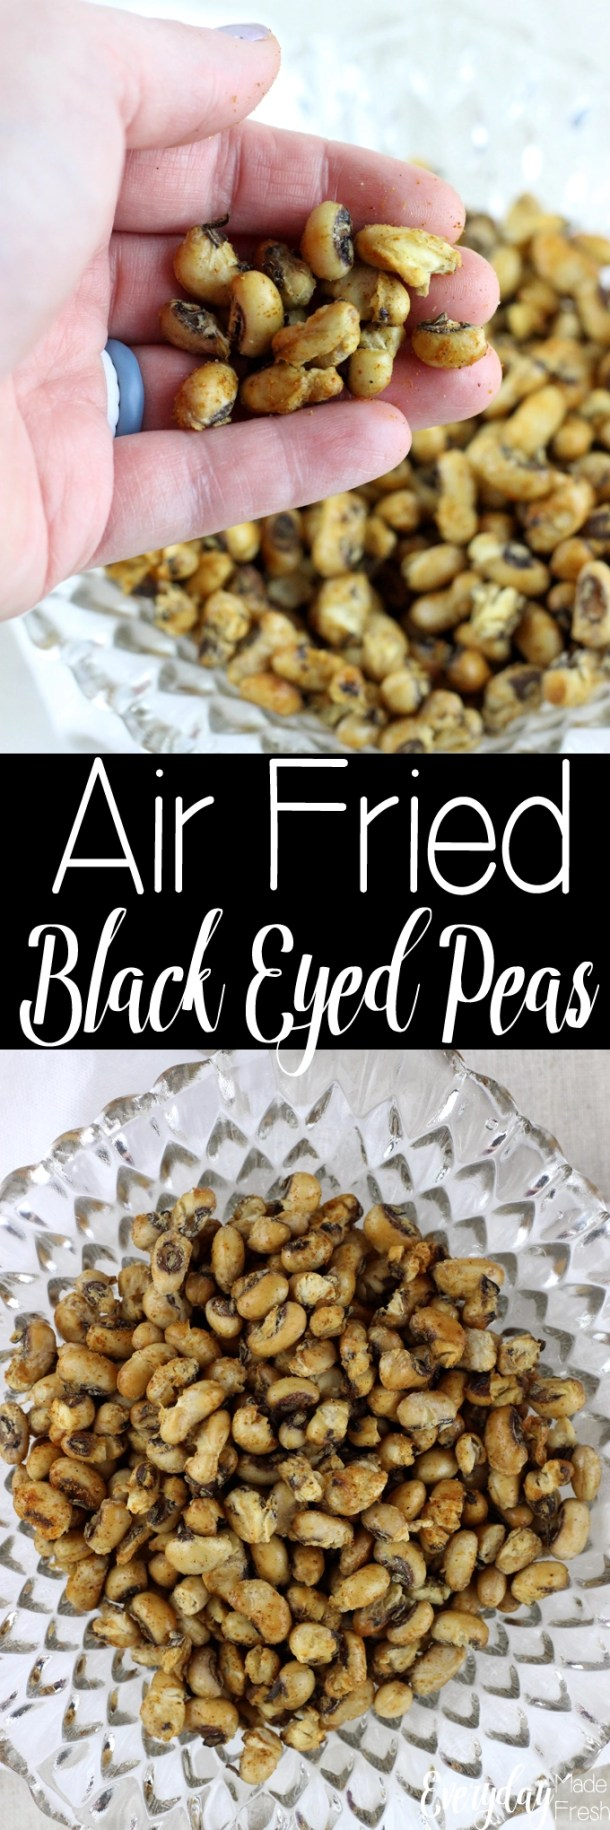 Crunchy on the outside and creamy on the inside, these Air Fried Black Eyed Peas are the perfect healthy snack!